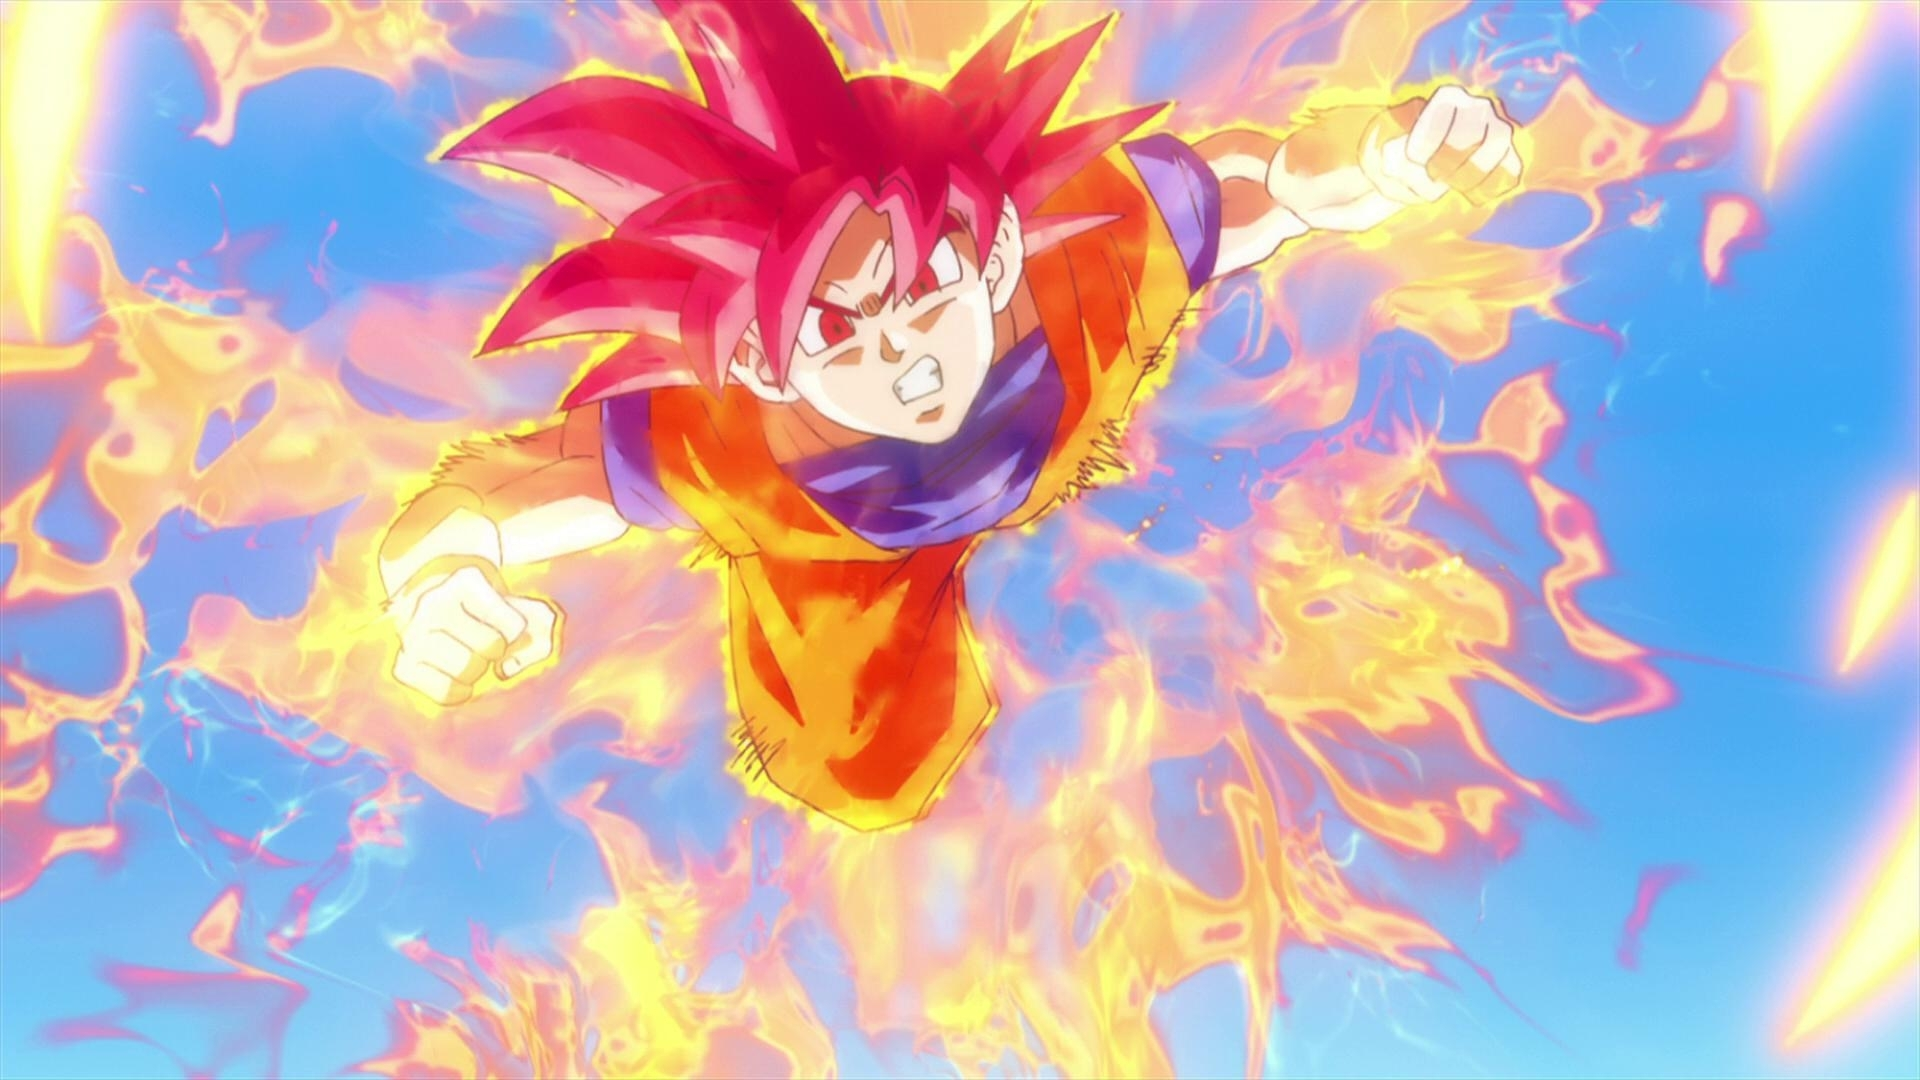 10 Ideal And Most Recent Super Saiyan God Wallpaper For Desktop With FULL HD 1080p 1920 X 1080 FREE DOWNLOAD